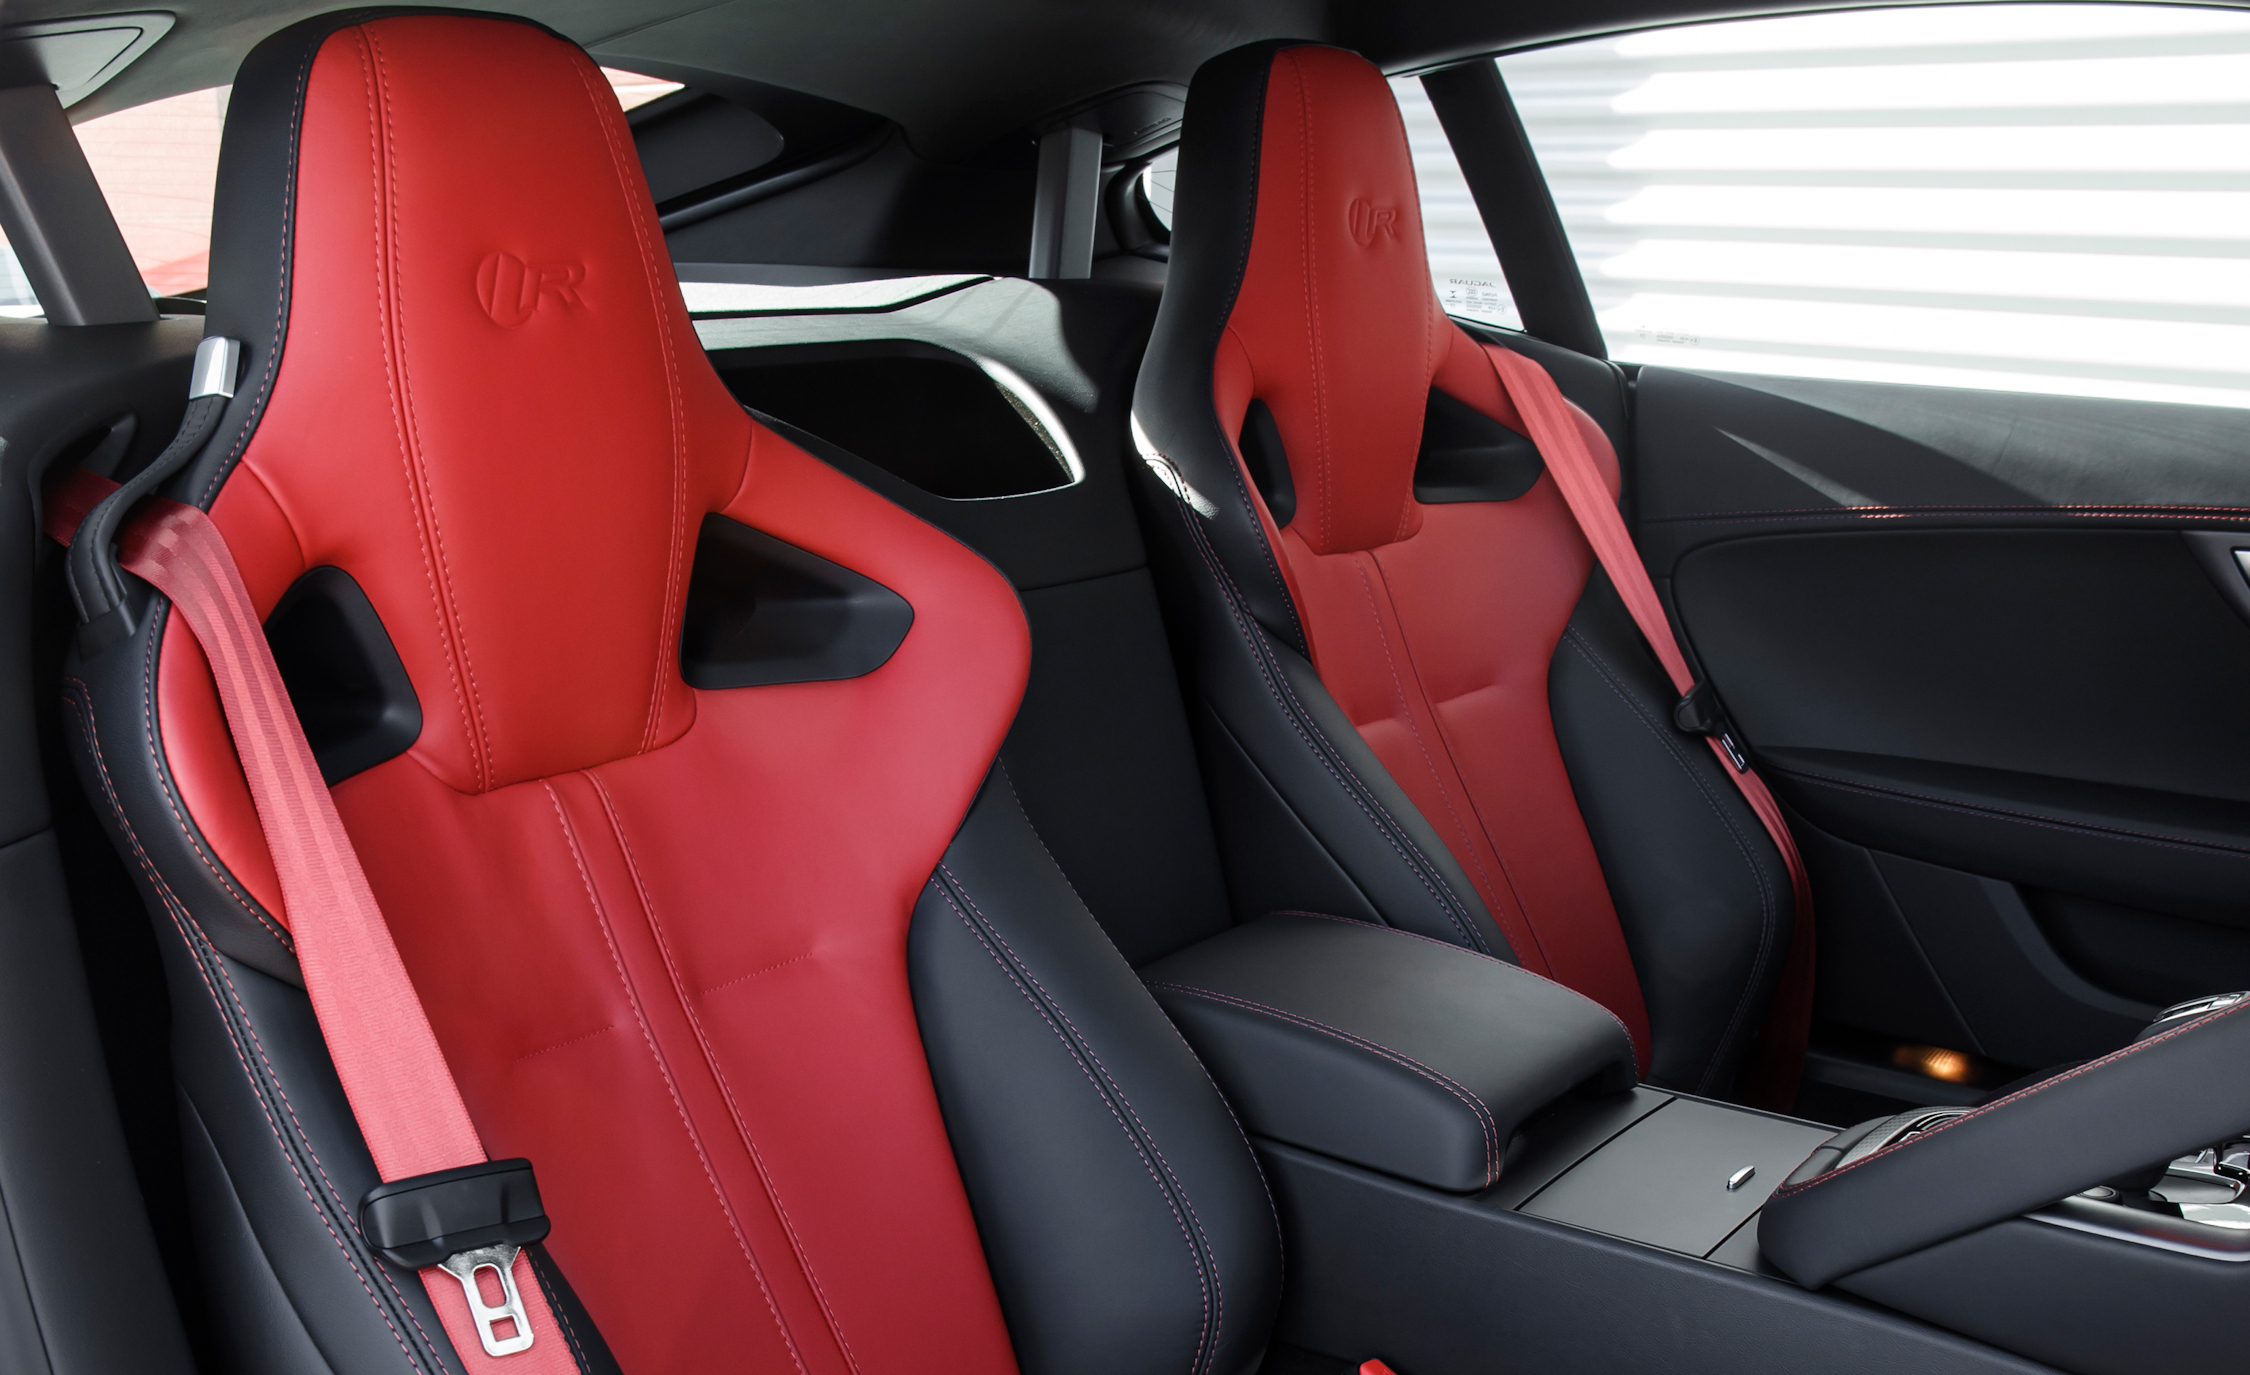 2015 Jaguar F-type R Coupe Interior Seats